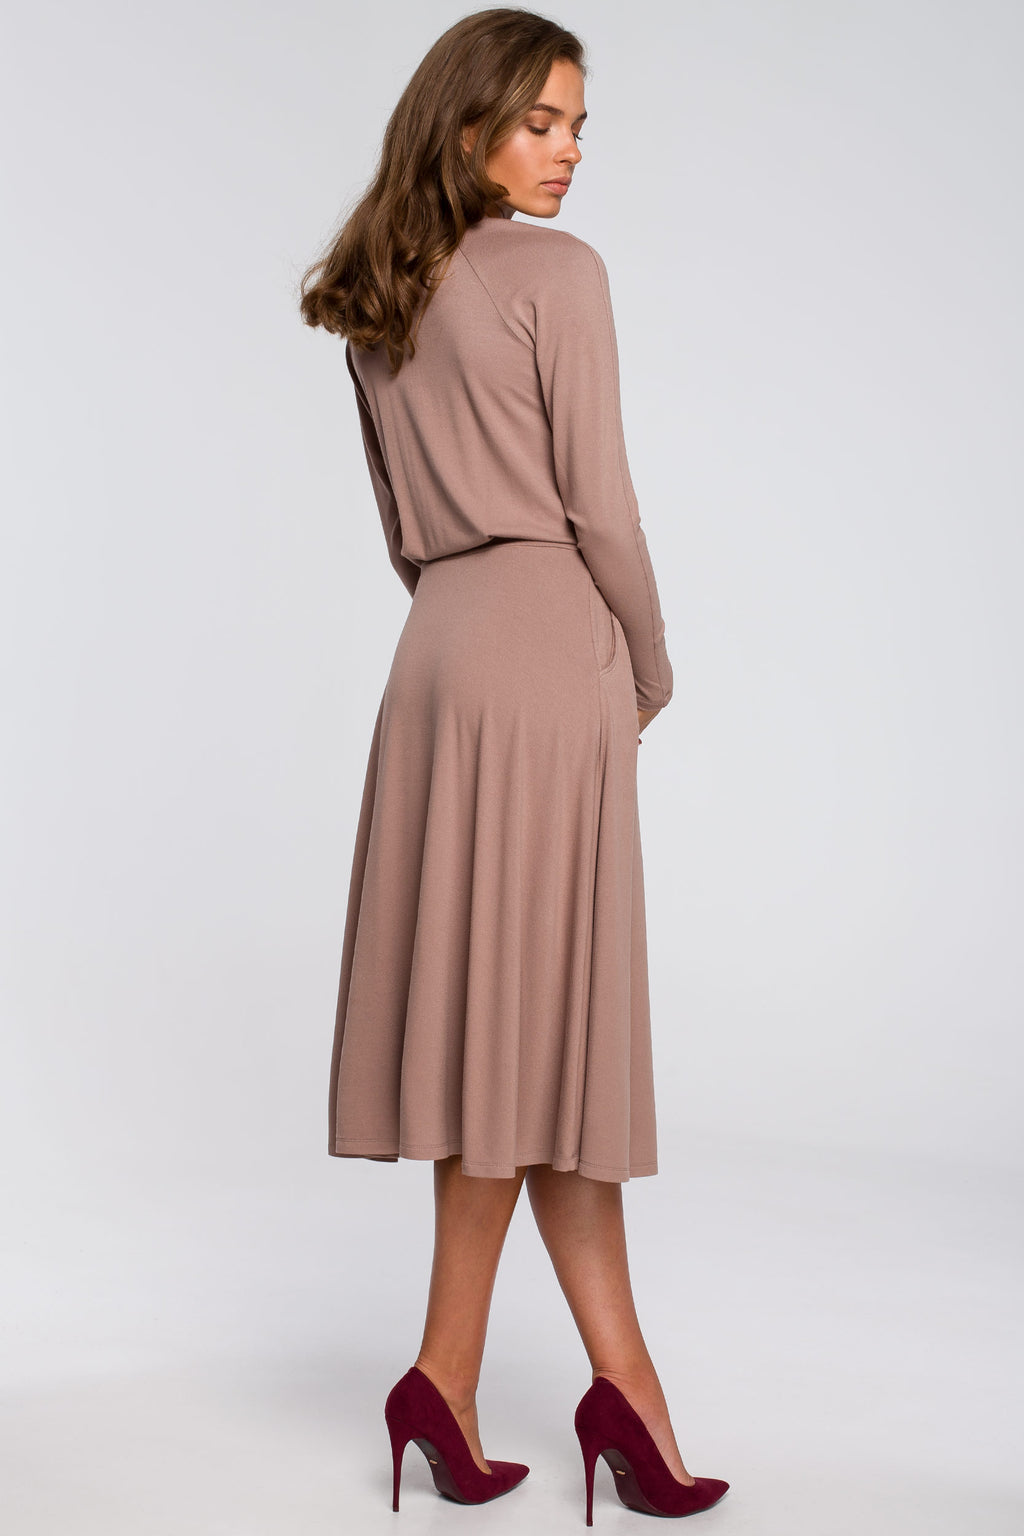 Beige Viscose Midi Flare Dress With Front Split - So Chic Boutique